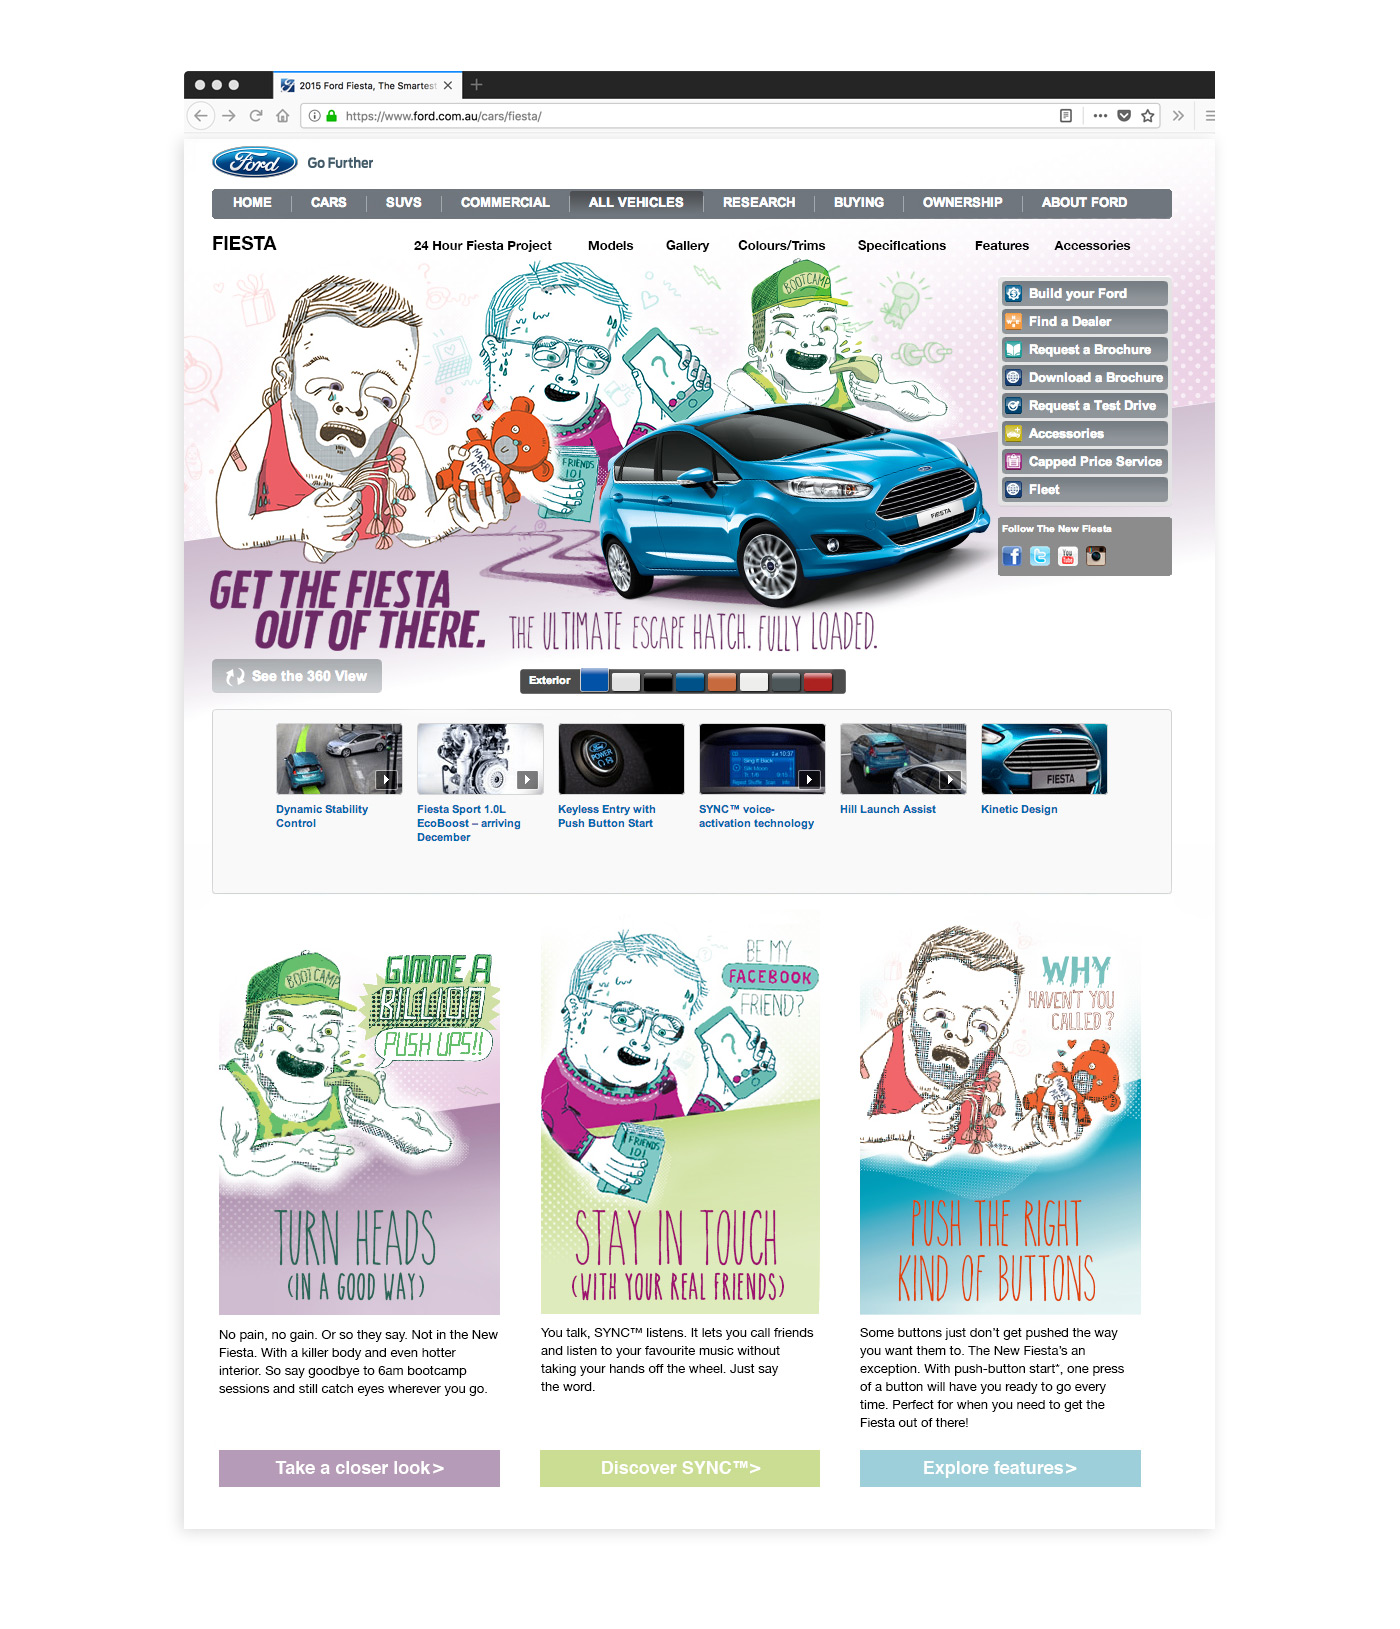 Ford: Get the Fiesta Out of There - is a website & Spotify campaign developed to engage first car buyers in their twenties. It worked by creating cartoon stereotypes of creepy guys that the Ford Fiesta can help you escape. I was creative director on this project.